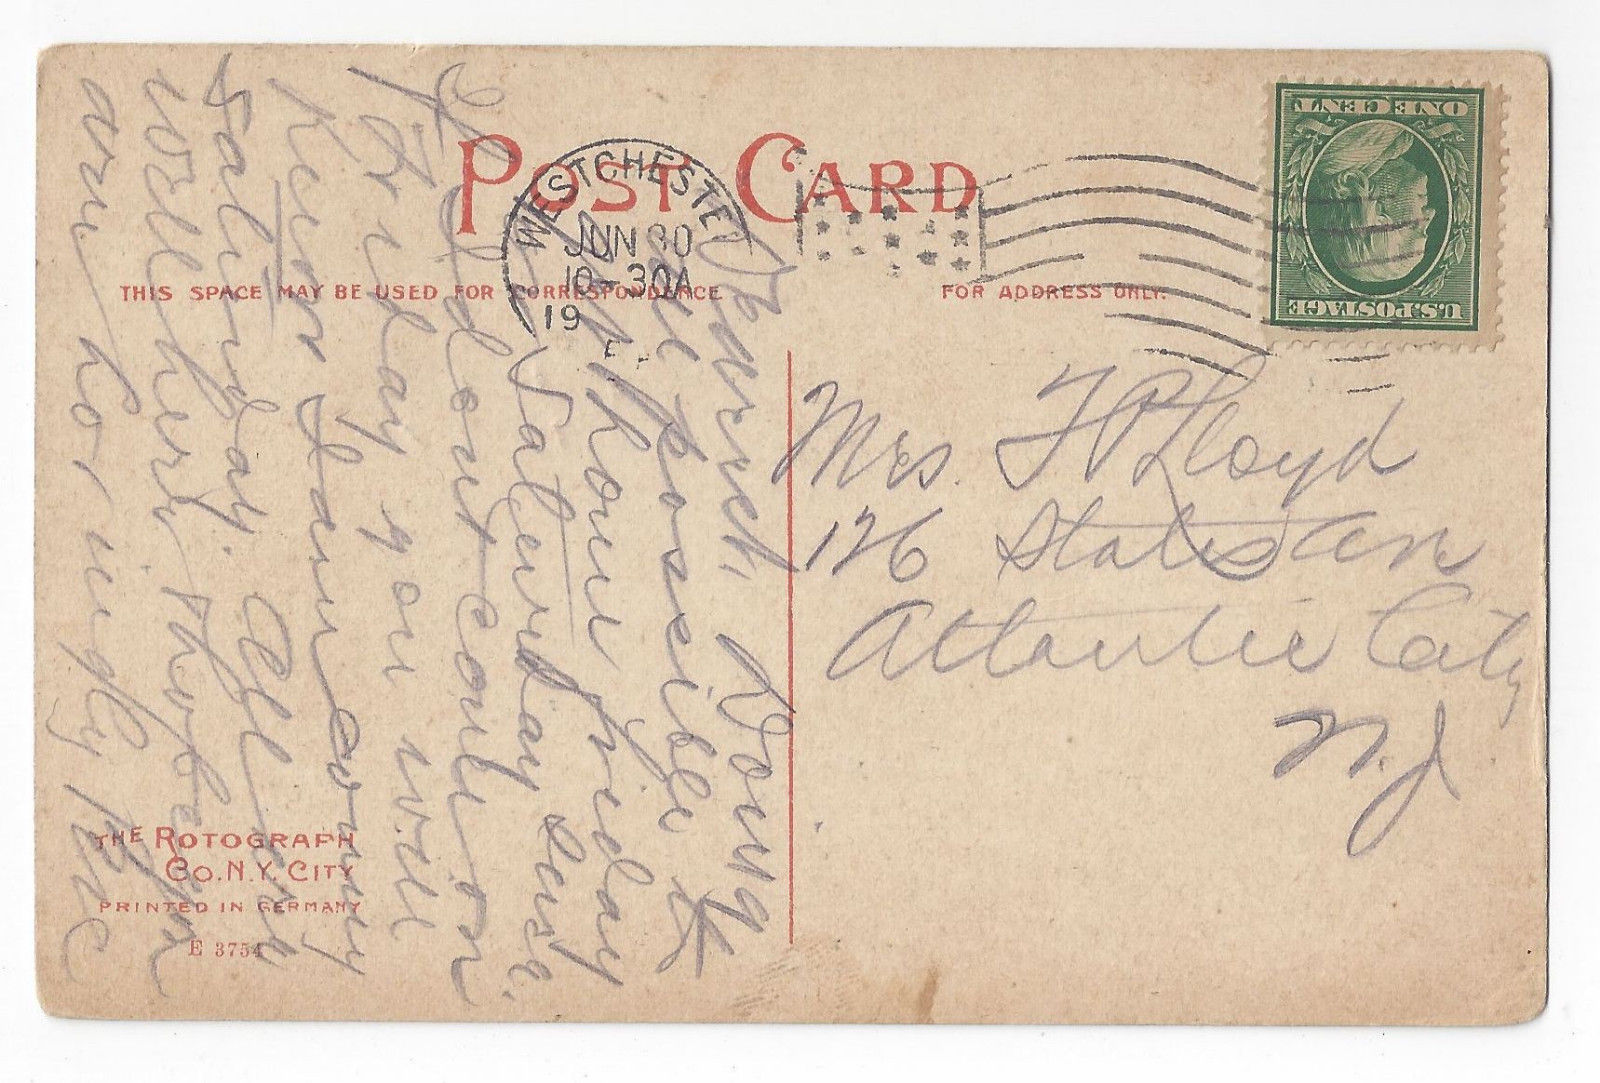 West Chester PA State Normal School Library University Rotograph Postcard